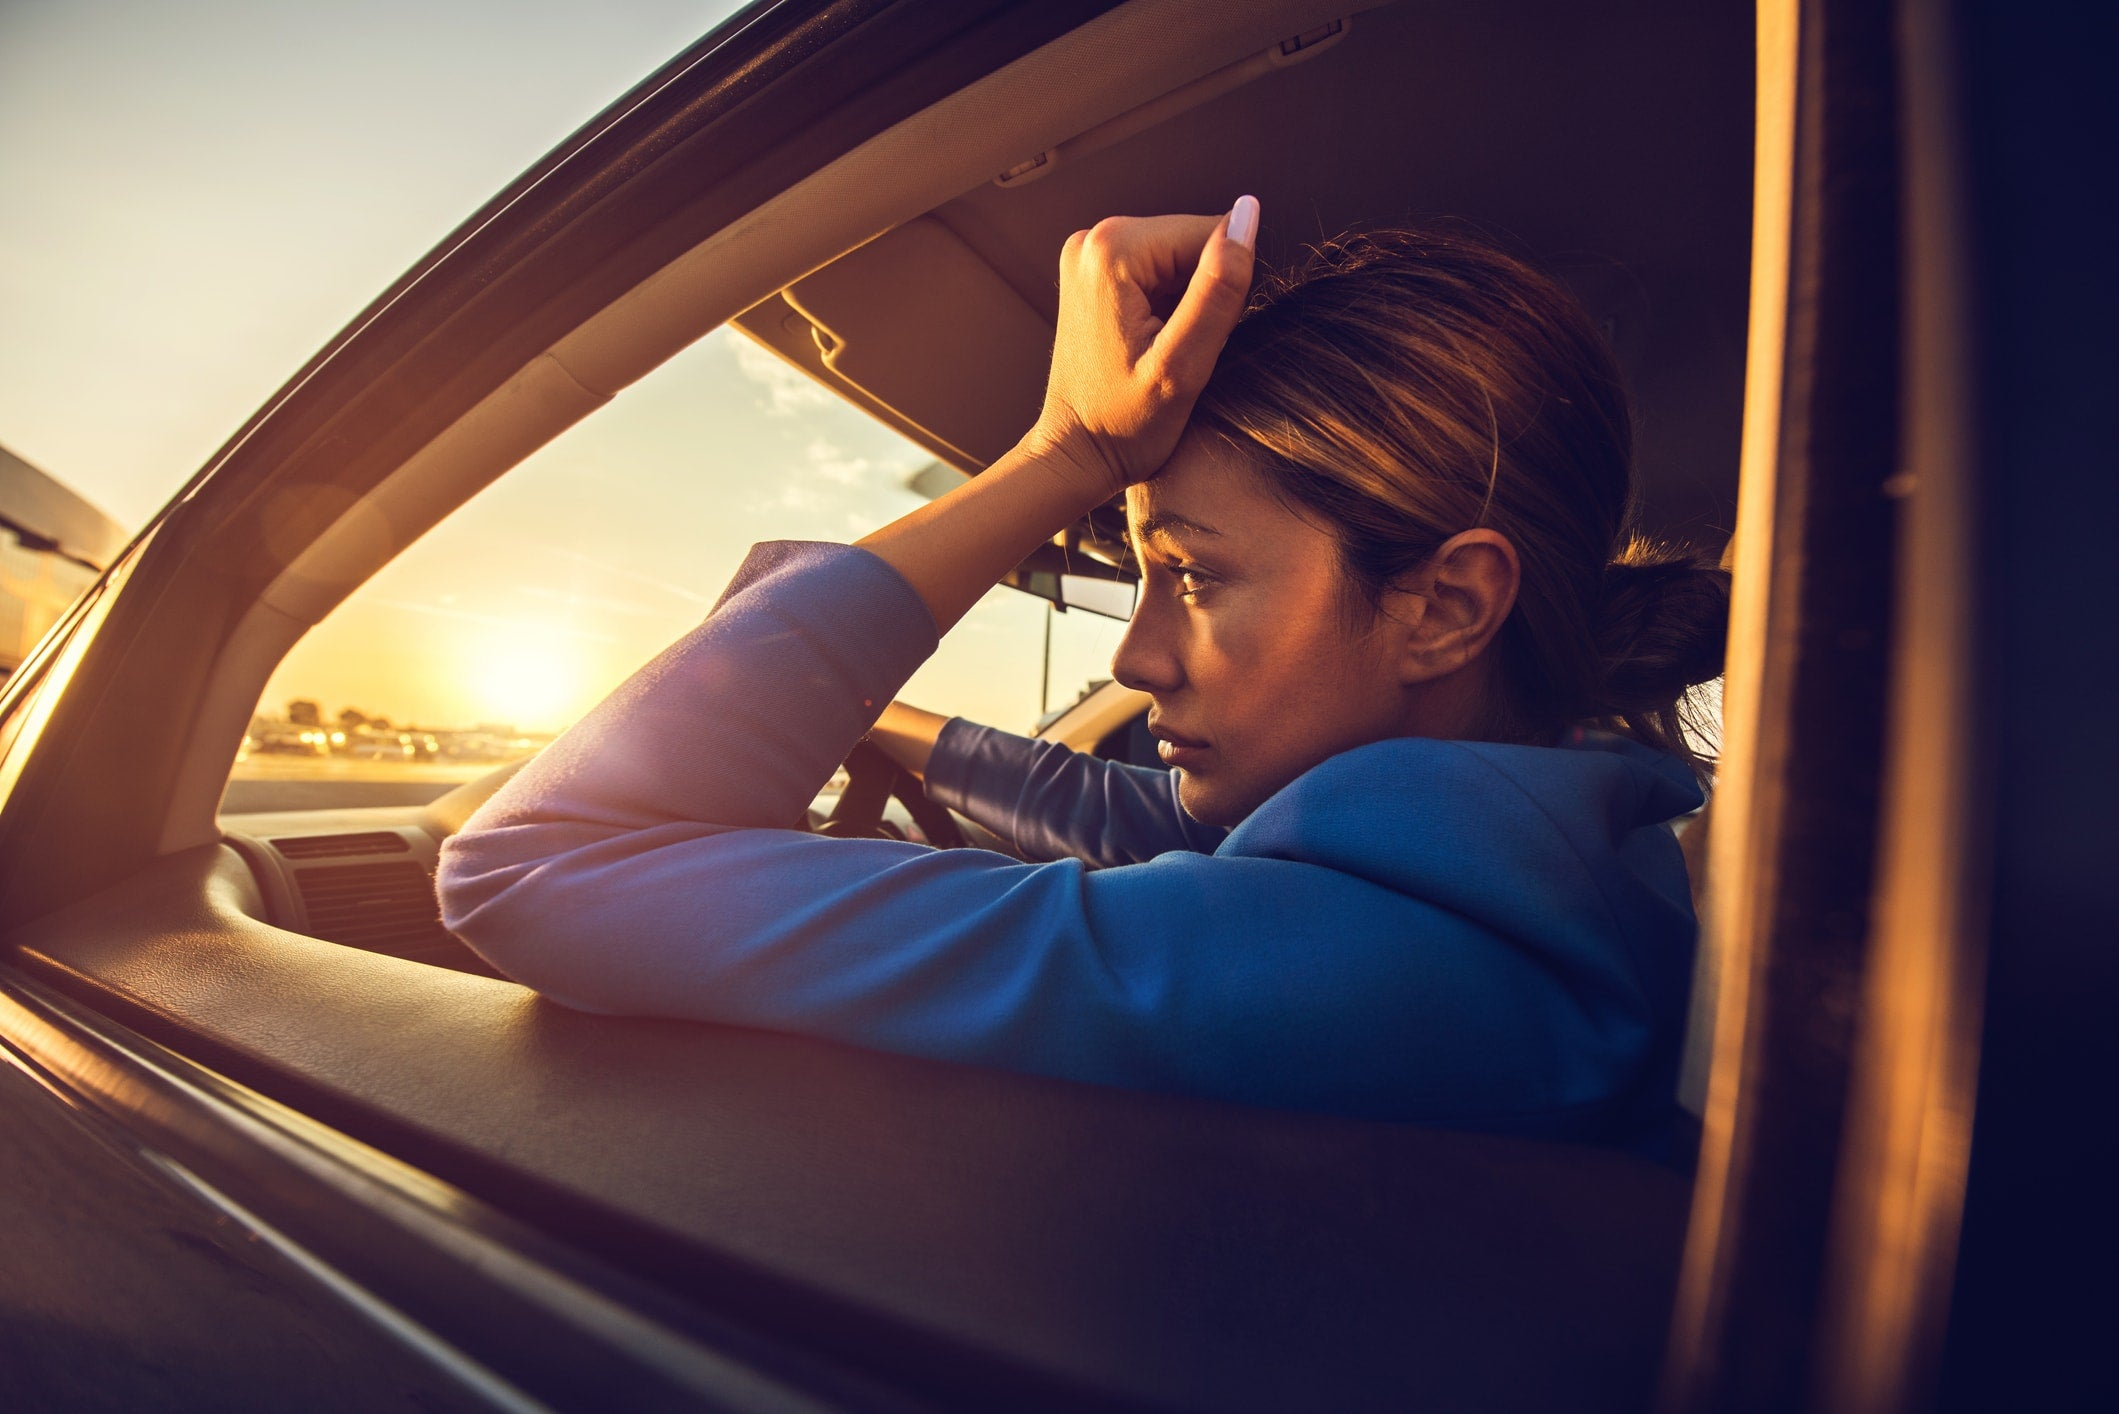 Too Sleepy to Drive: Facts and Statistics on Drowsy Driving